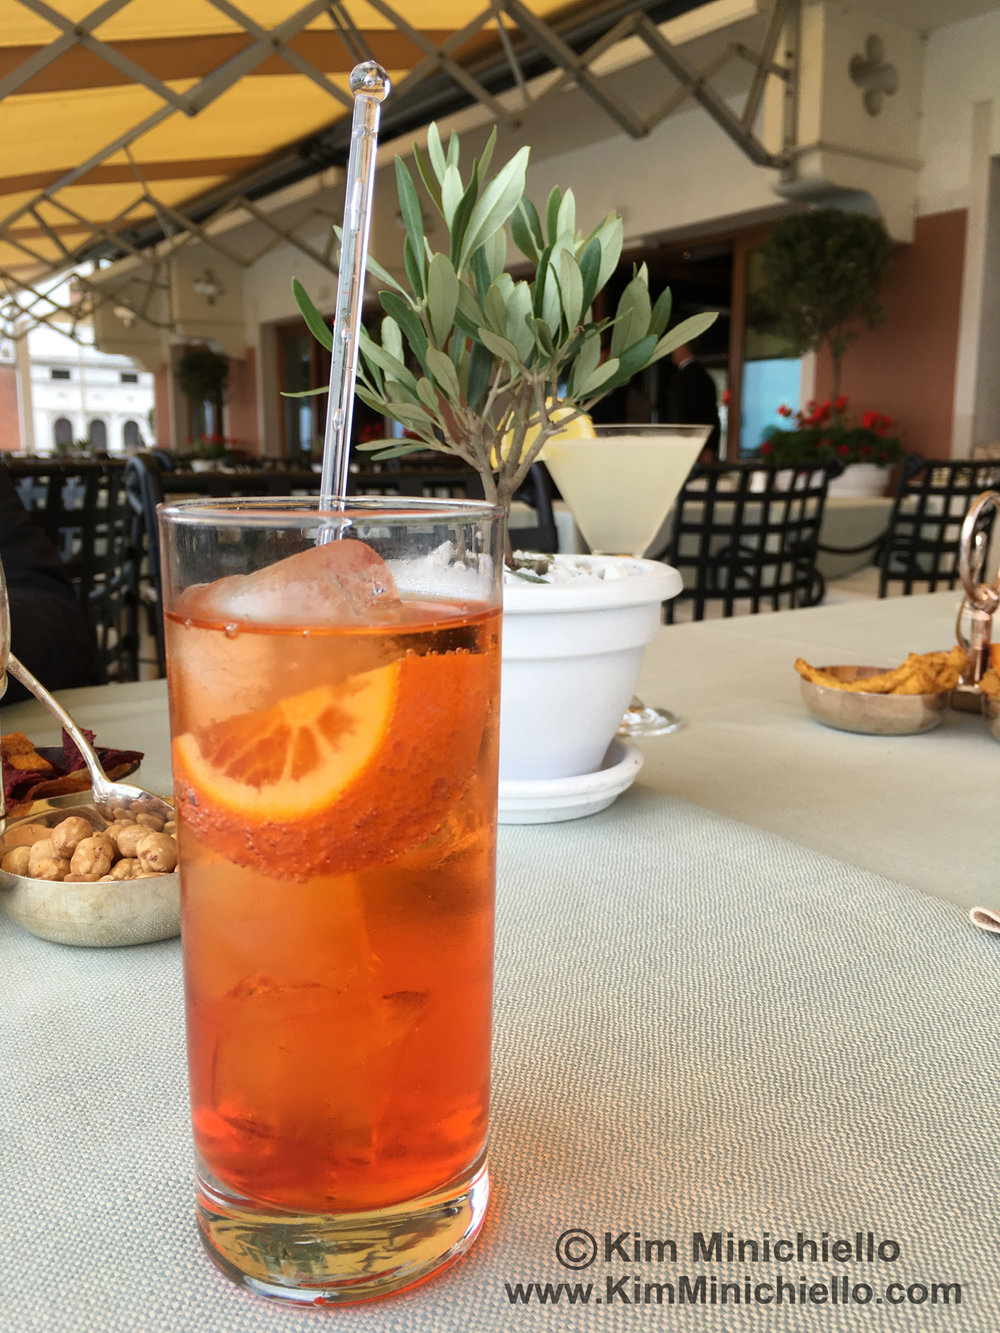 My favorite Aperitivo, The Spritz